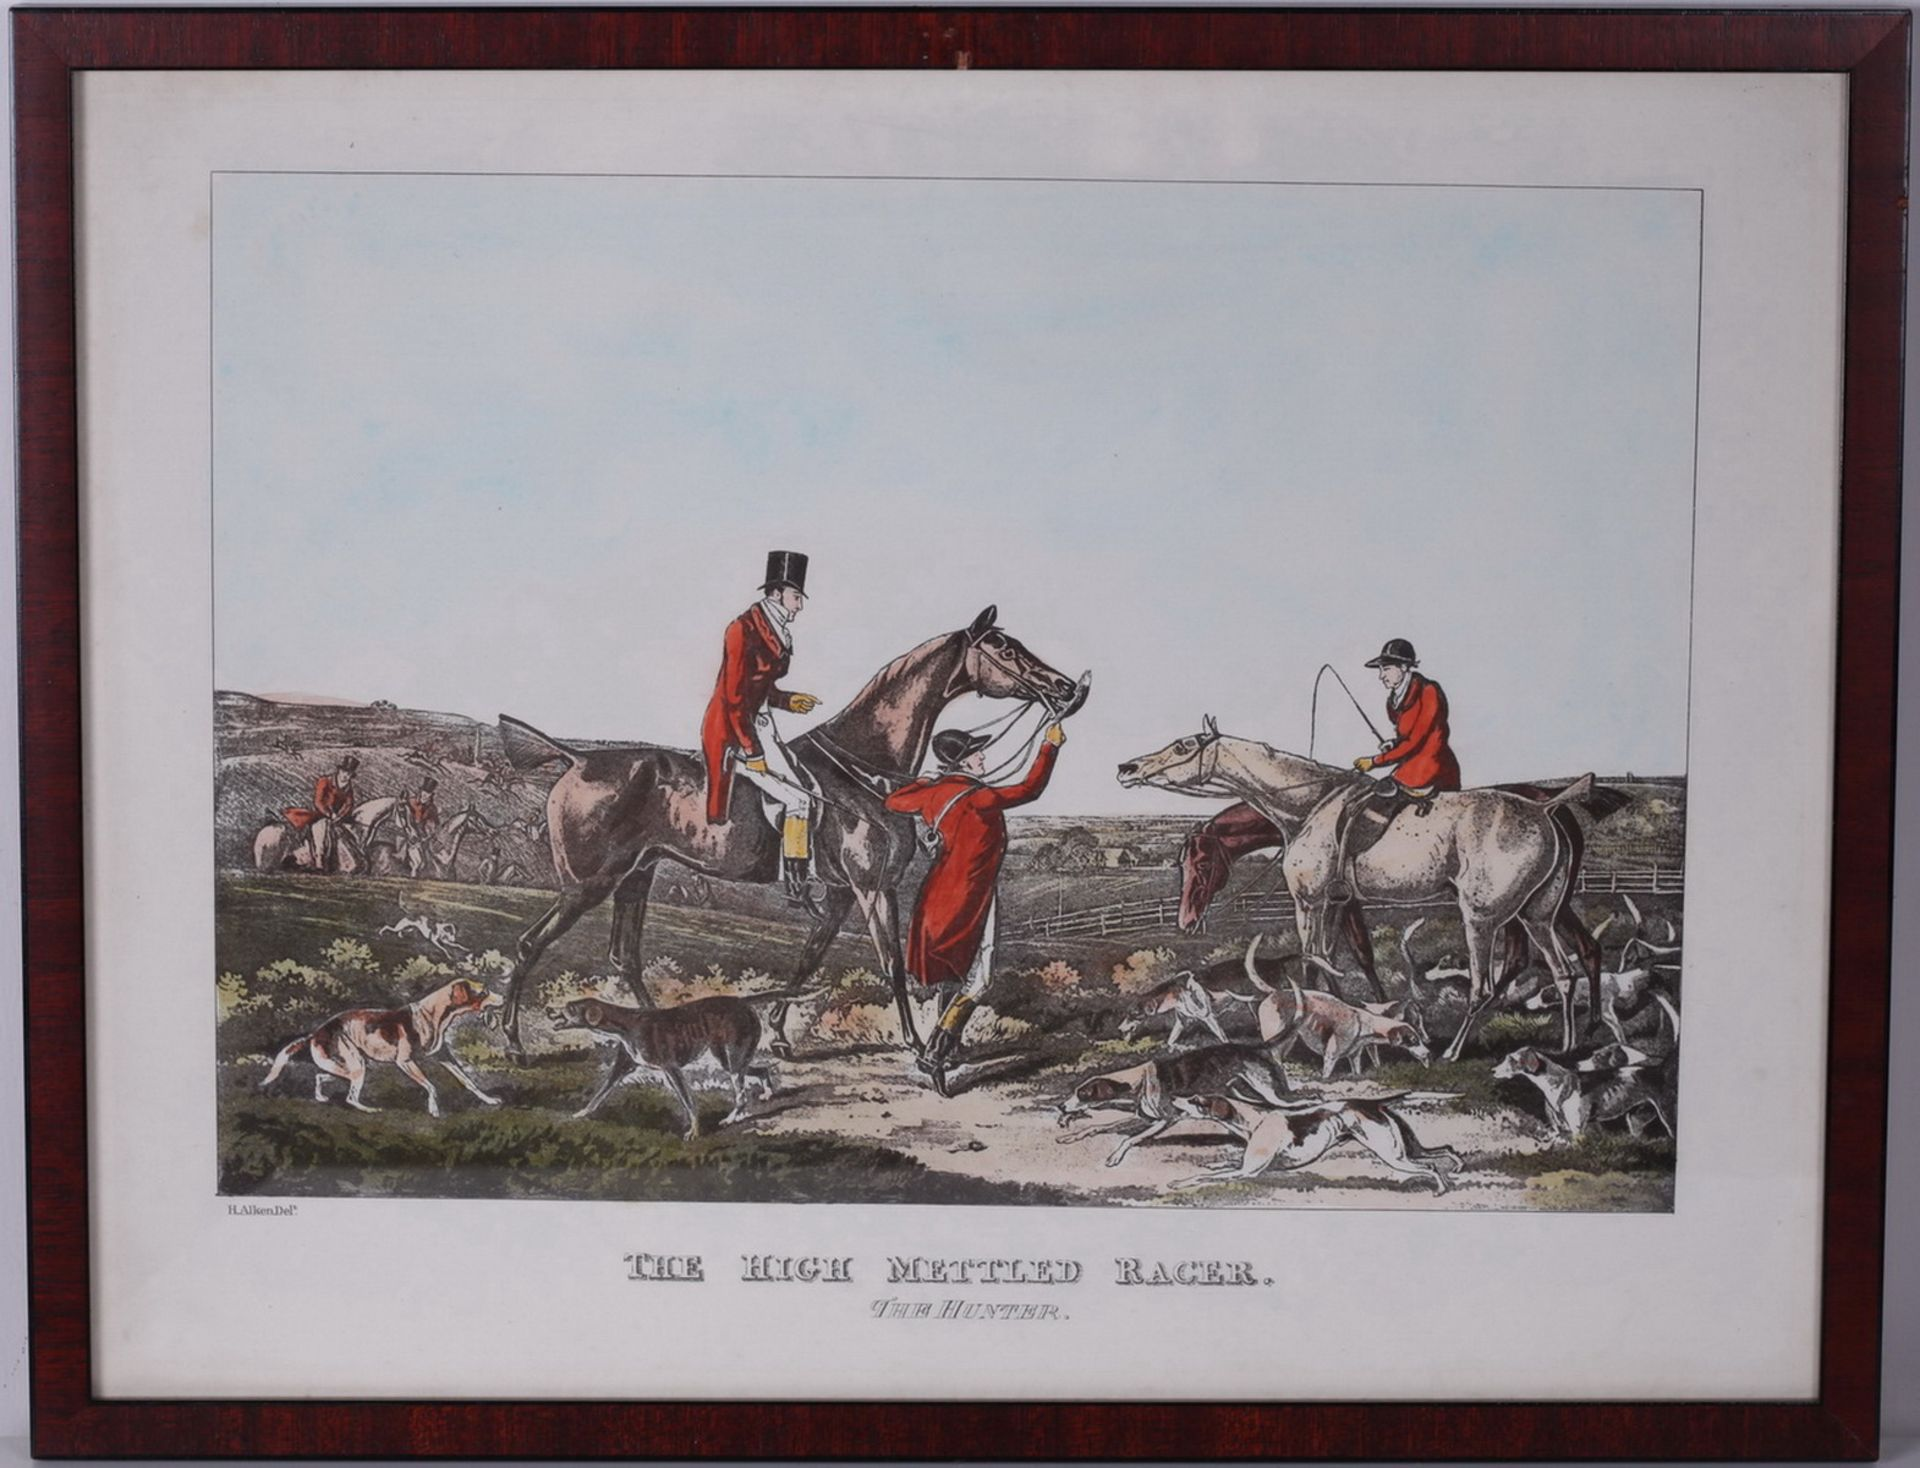 """Alken, Henry. Lithograph """"The High Mettled Racer. The hunter"""". <br>Framed. Middle of the XIX century"""